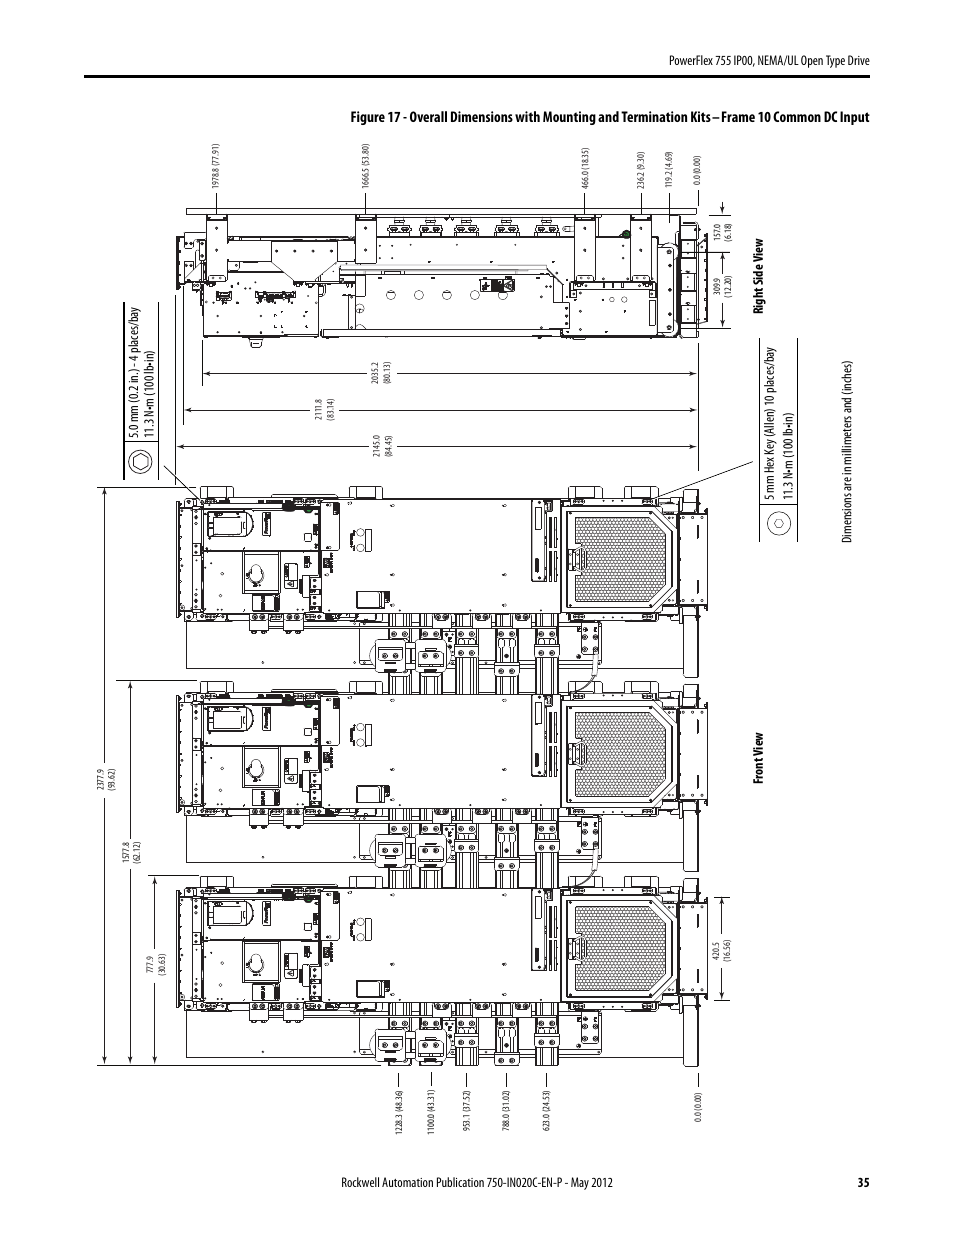 Drives Service Support Powerflex Wiring Diagrams And Allen Bradley Motor Control likewise Diagram moreover Wiring Two Subwoofers X together with Firecat Electrical Diagram furthermore . on powerflex 755 wiring diagrams